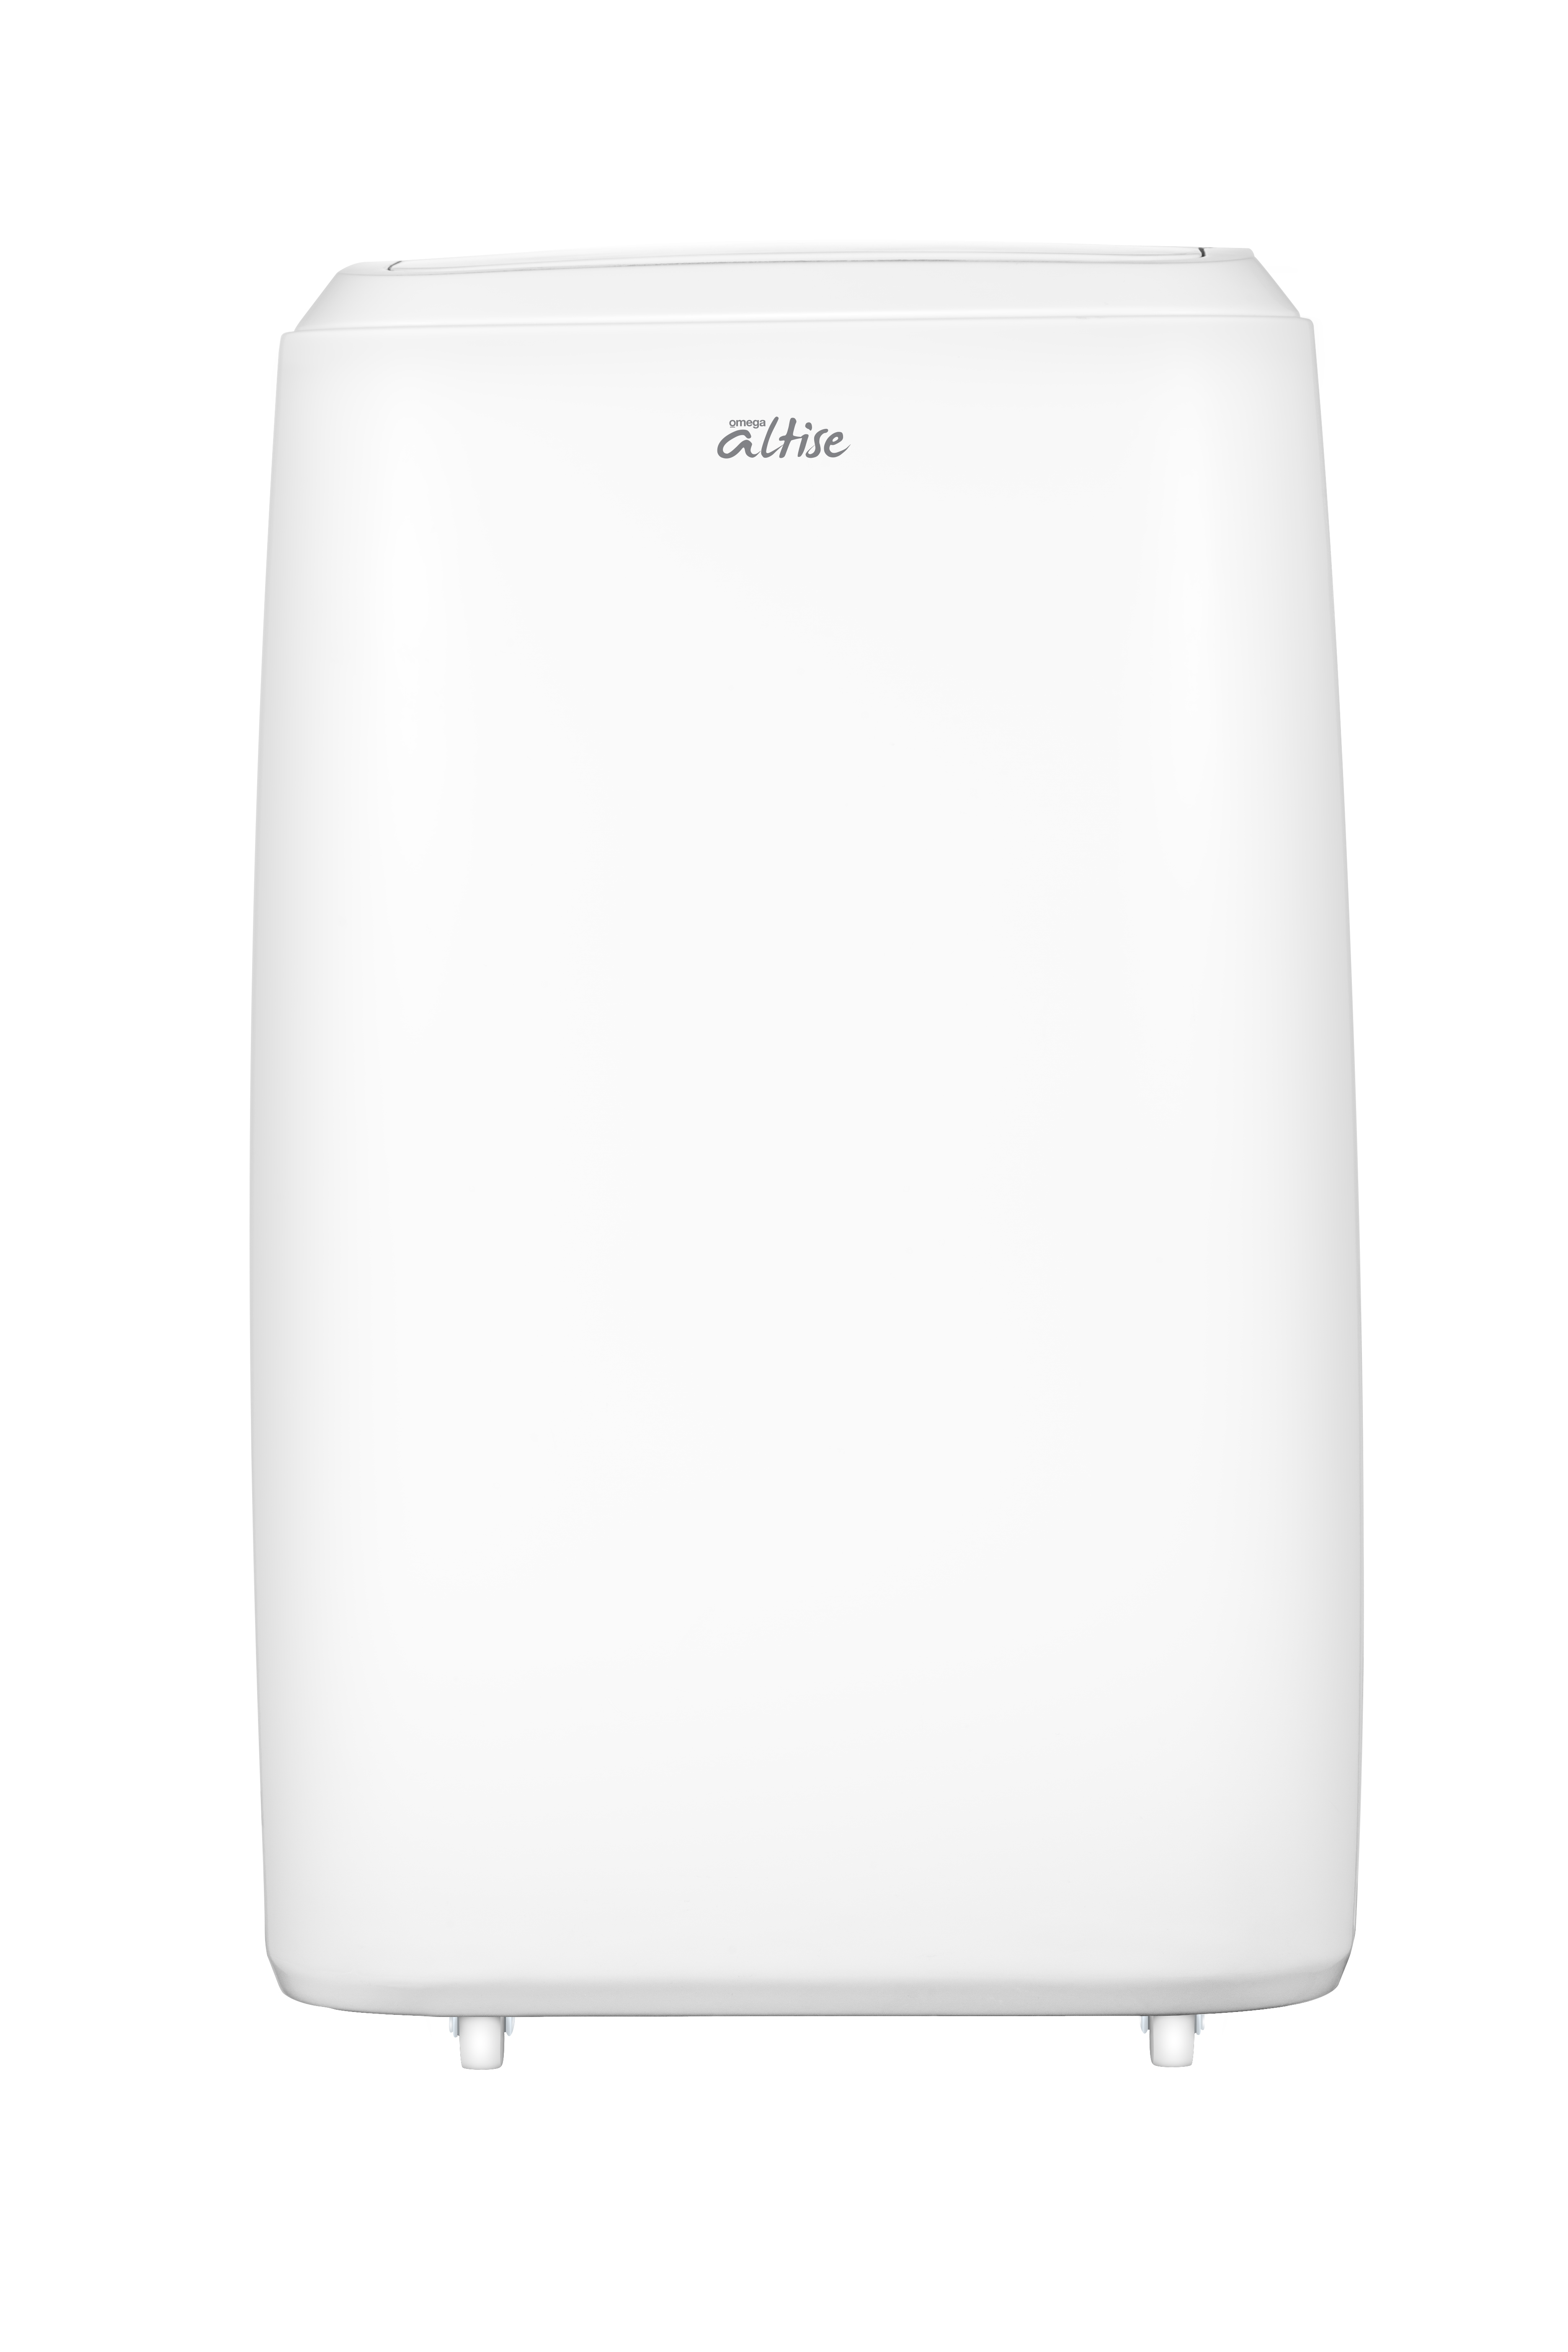 Omega Altise product 4.6kW Slimline Portable Air-Conditioner OAPC167